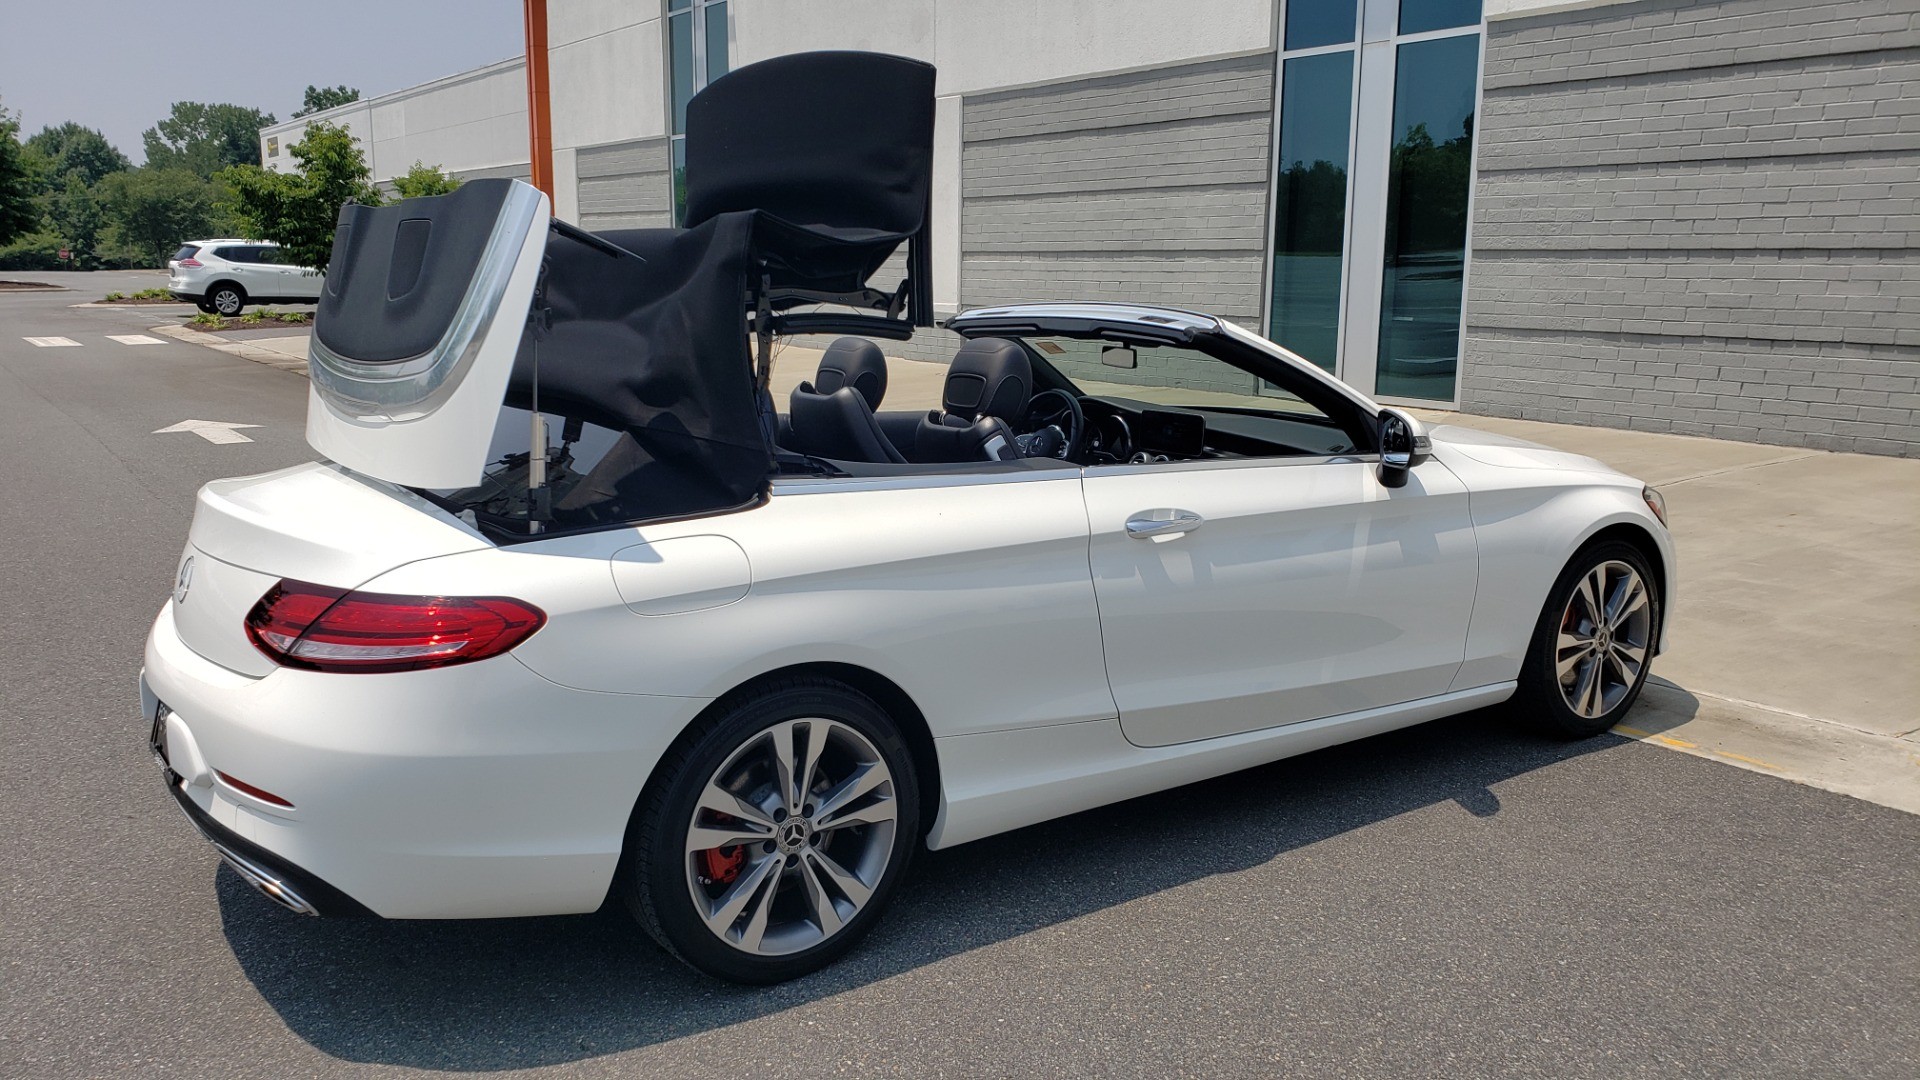 Used 2019 Mercedes-Benz C-CLASS C 300 CABRIOLET 2.0L / AUTO / NAV / HD RADIO / REARVIEW for sale $46,995 at Formula Imports in Charlotte NC 28227 48